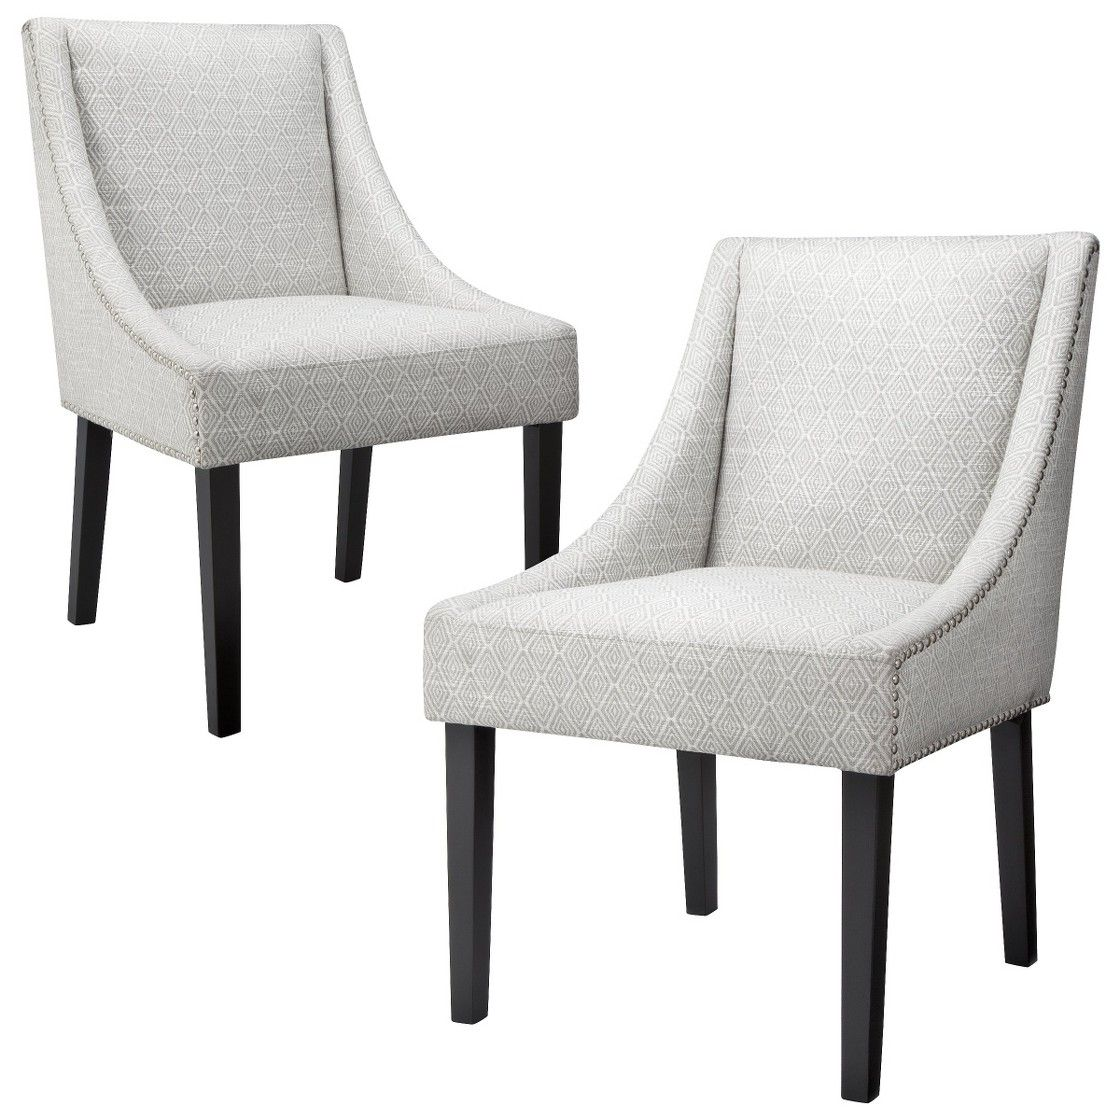 kitchen table sets target Griffin Nailhead Cutback Dining Chair Diamond Set of 2 available at target set of 2